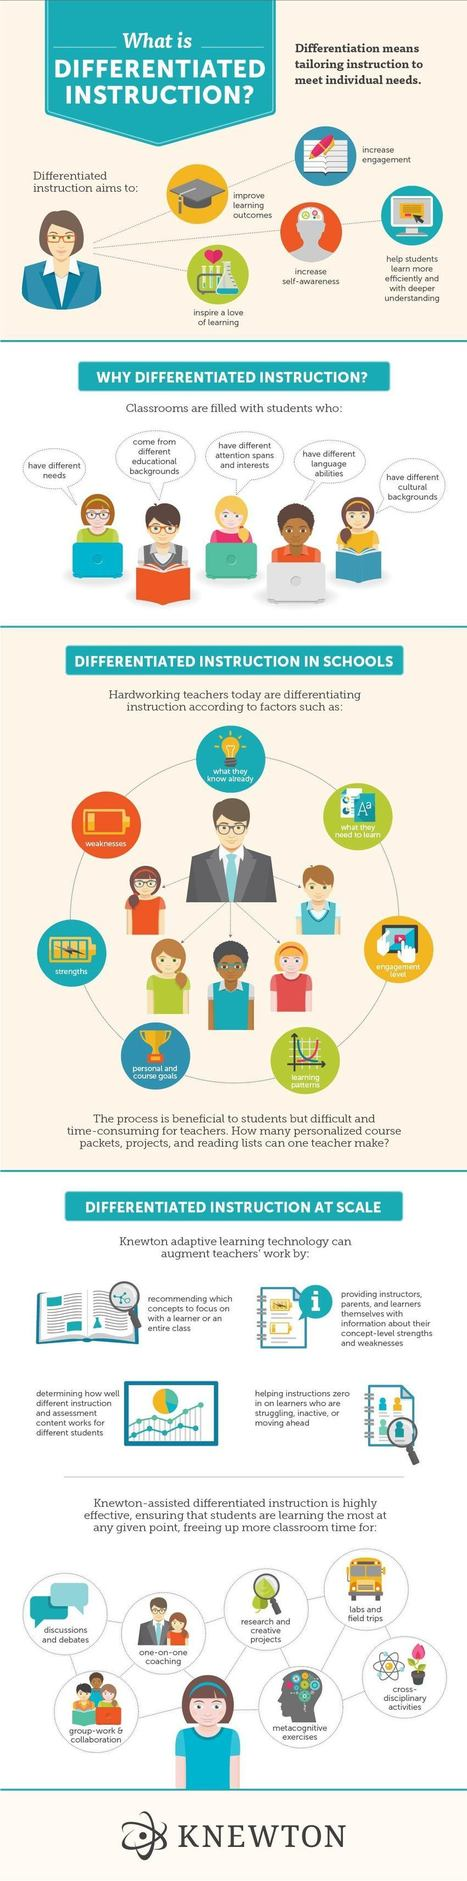 Differentiated Instruction Visually Explained for Teachers [Infographic] | Coaching | Active learning in Higher Education | Scoop.it